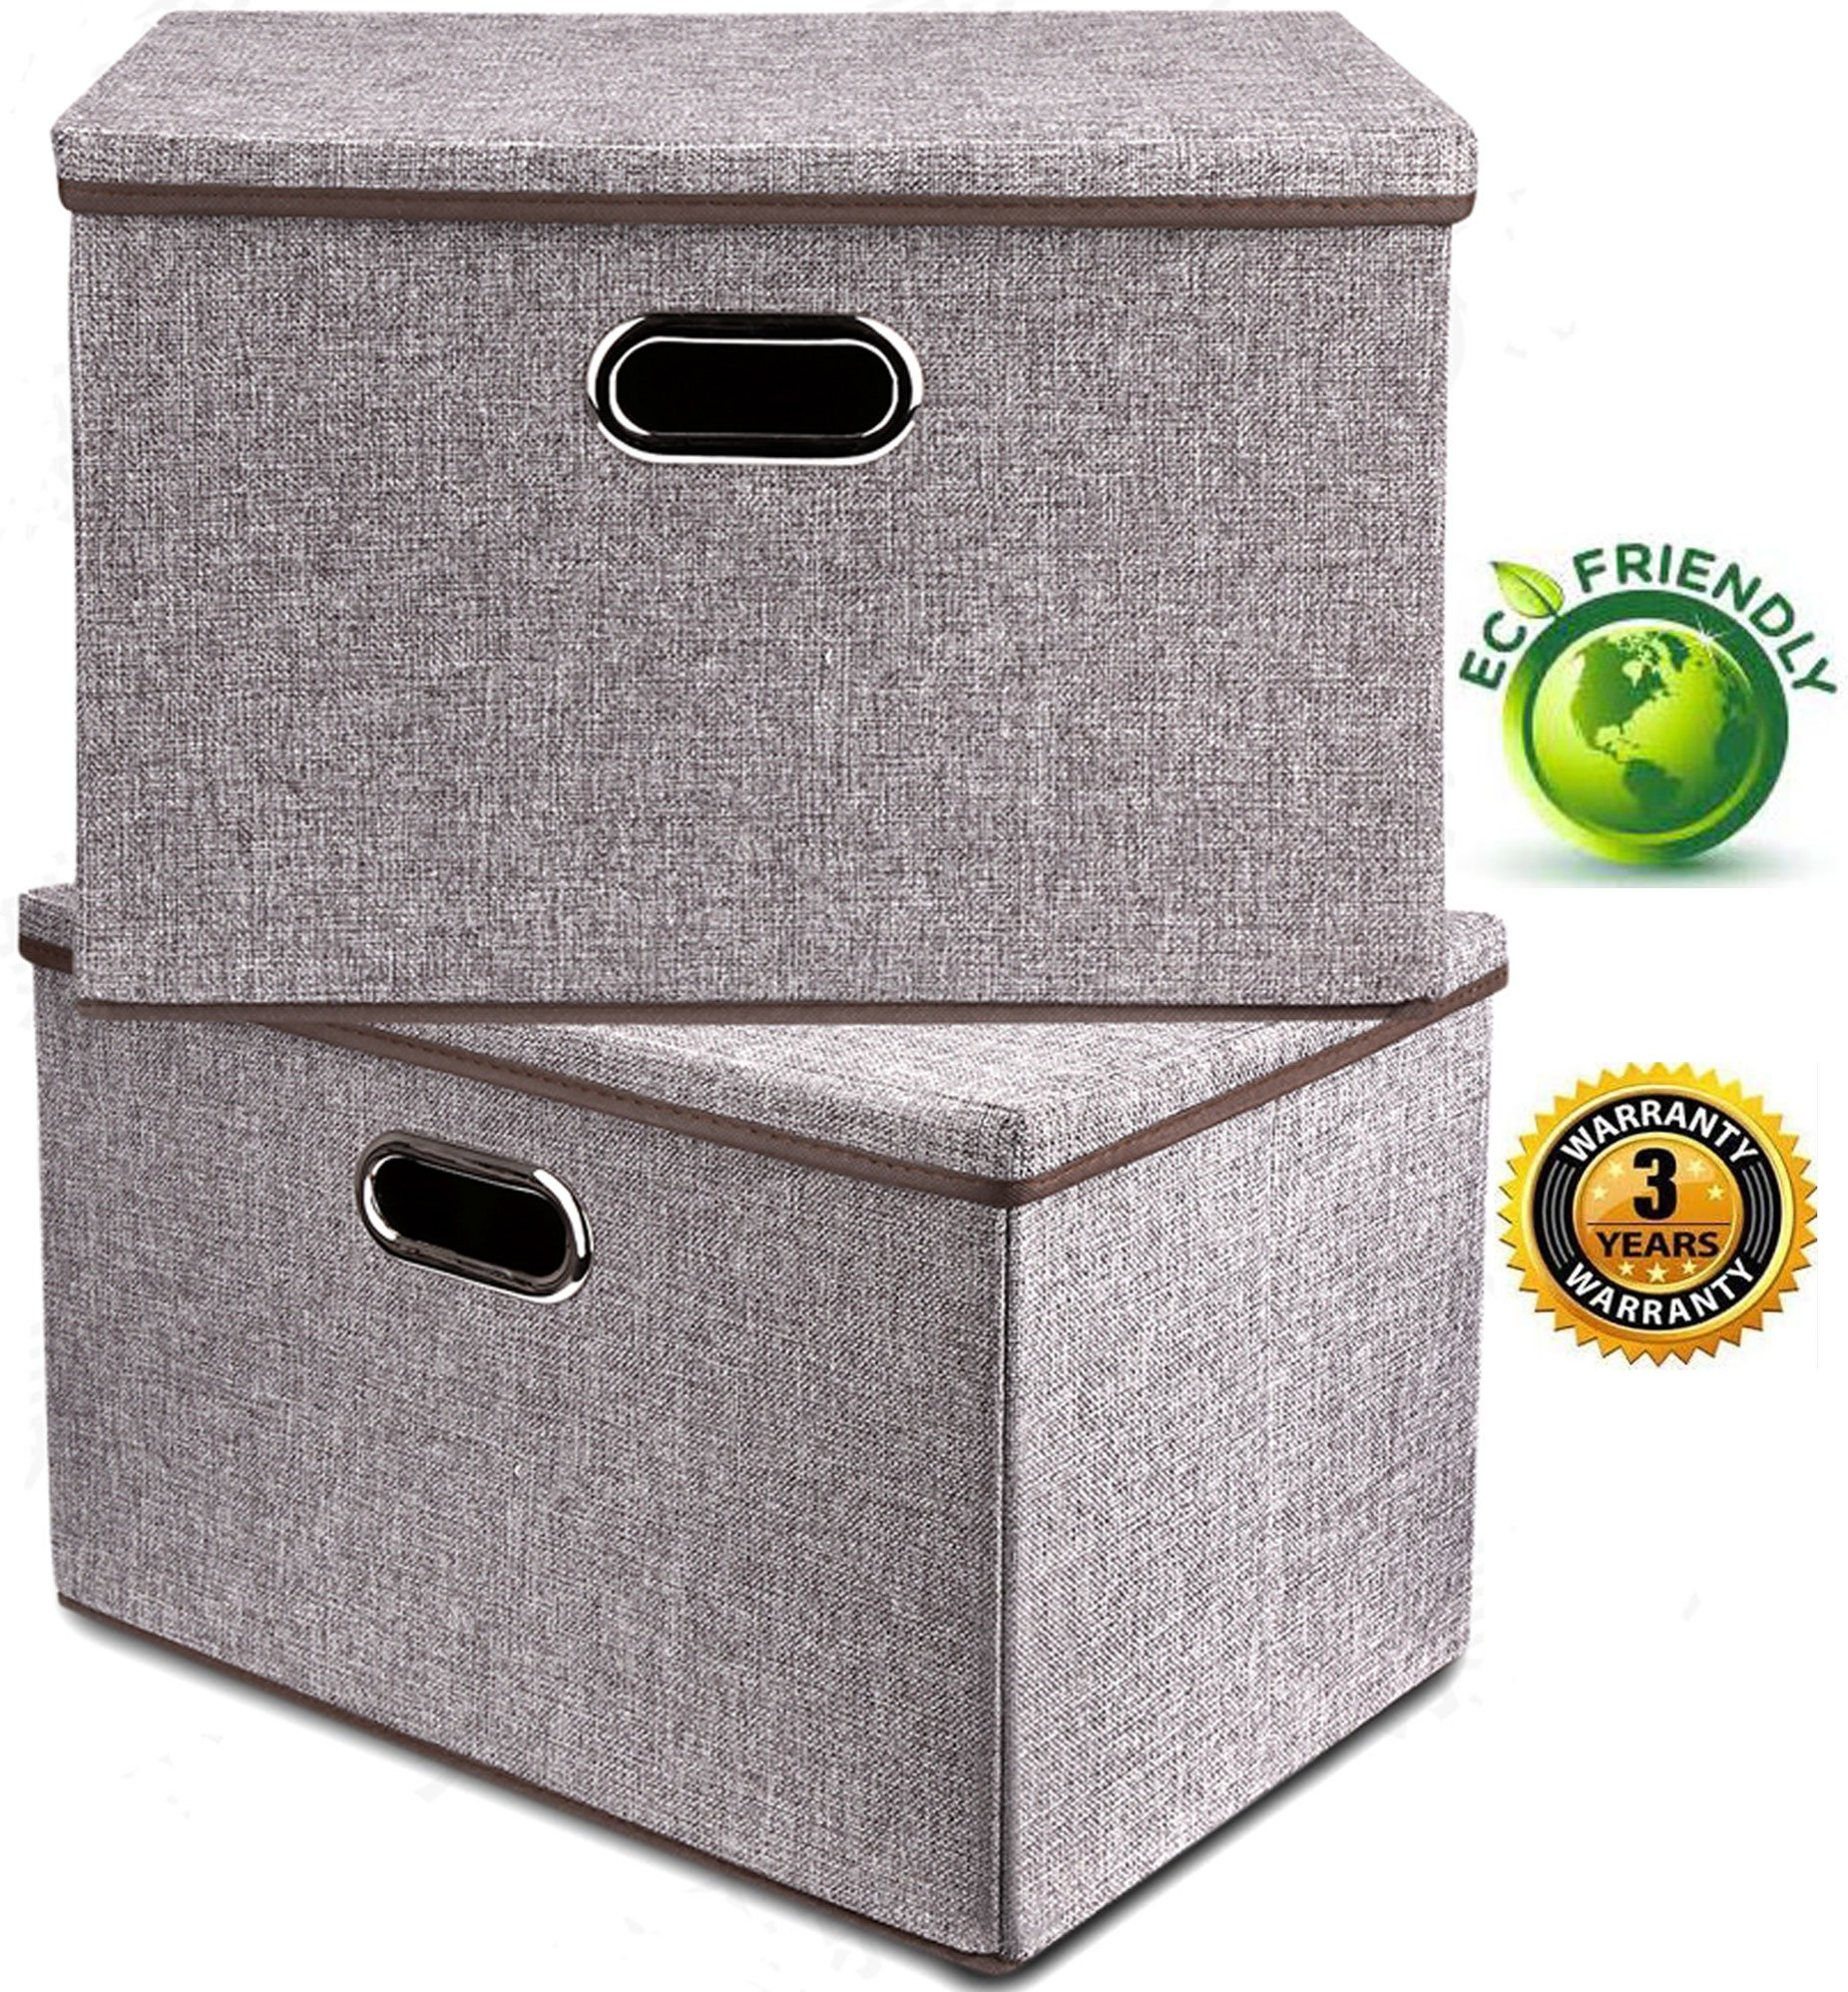 Large Linen Fabric Foldable Storage Container [2-Pack] with Removable Lid and Handles,Storage bin box cubes Organizer - Gray For Home, Office, Nursery, Closet, Bedroom, Living Room by Baseshop (Image #1)